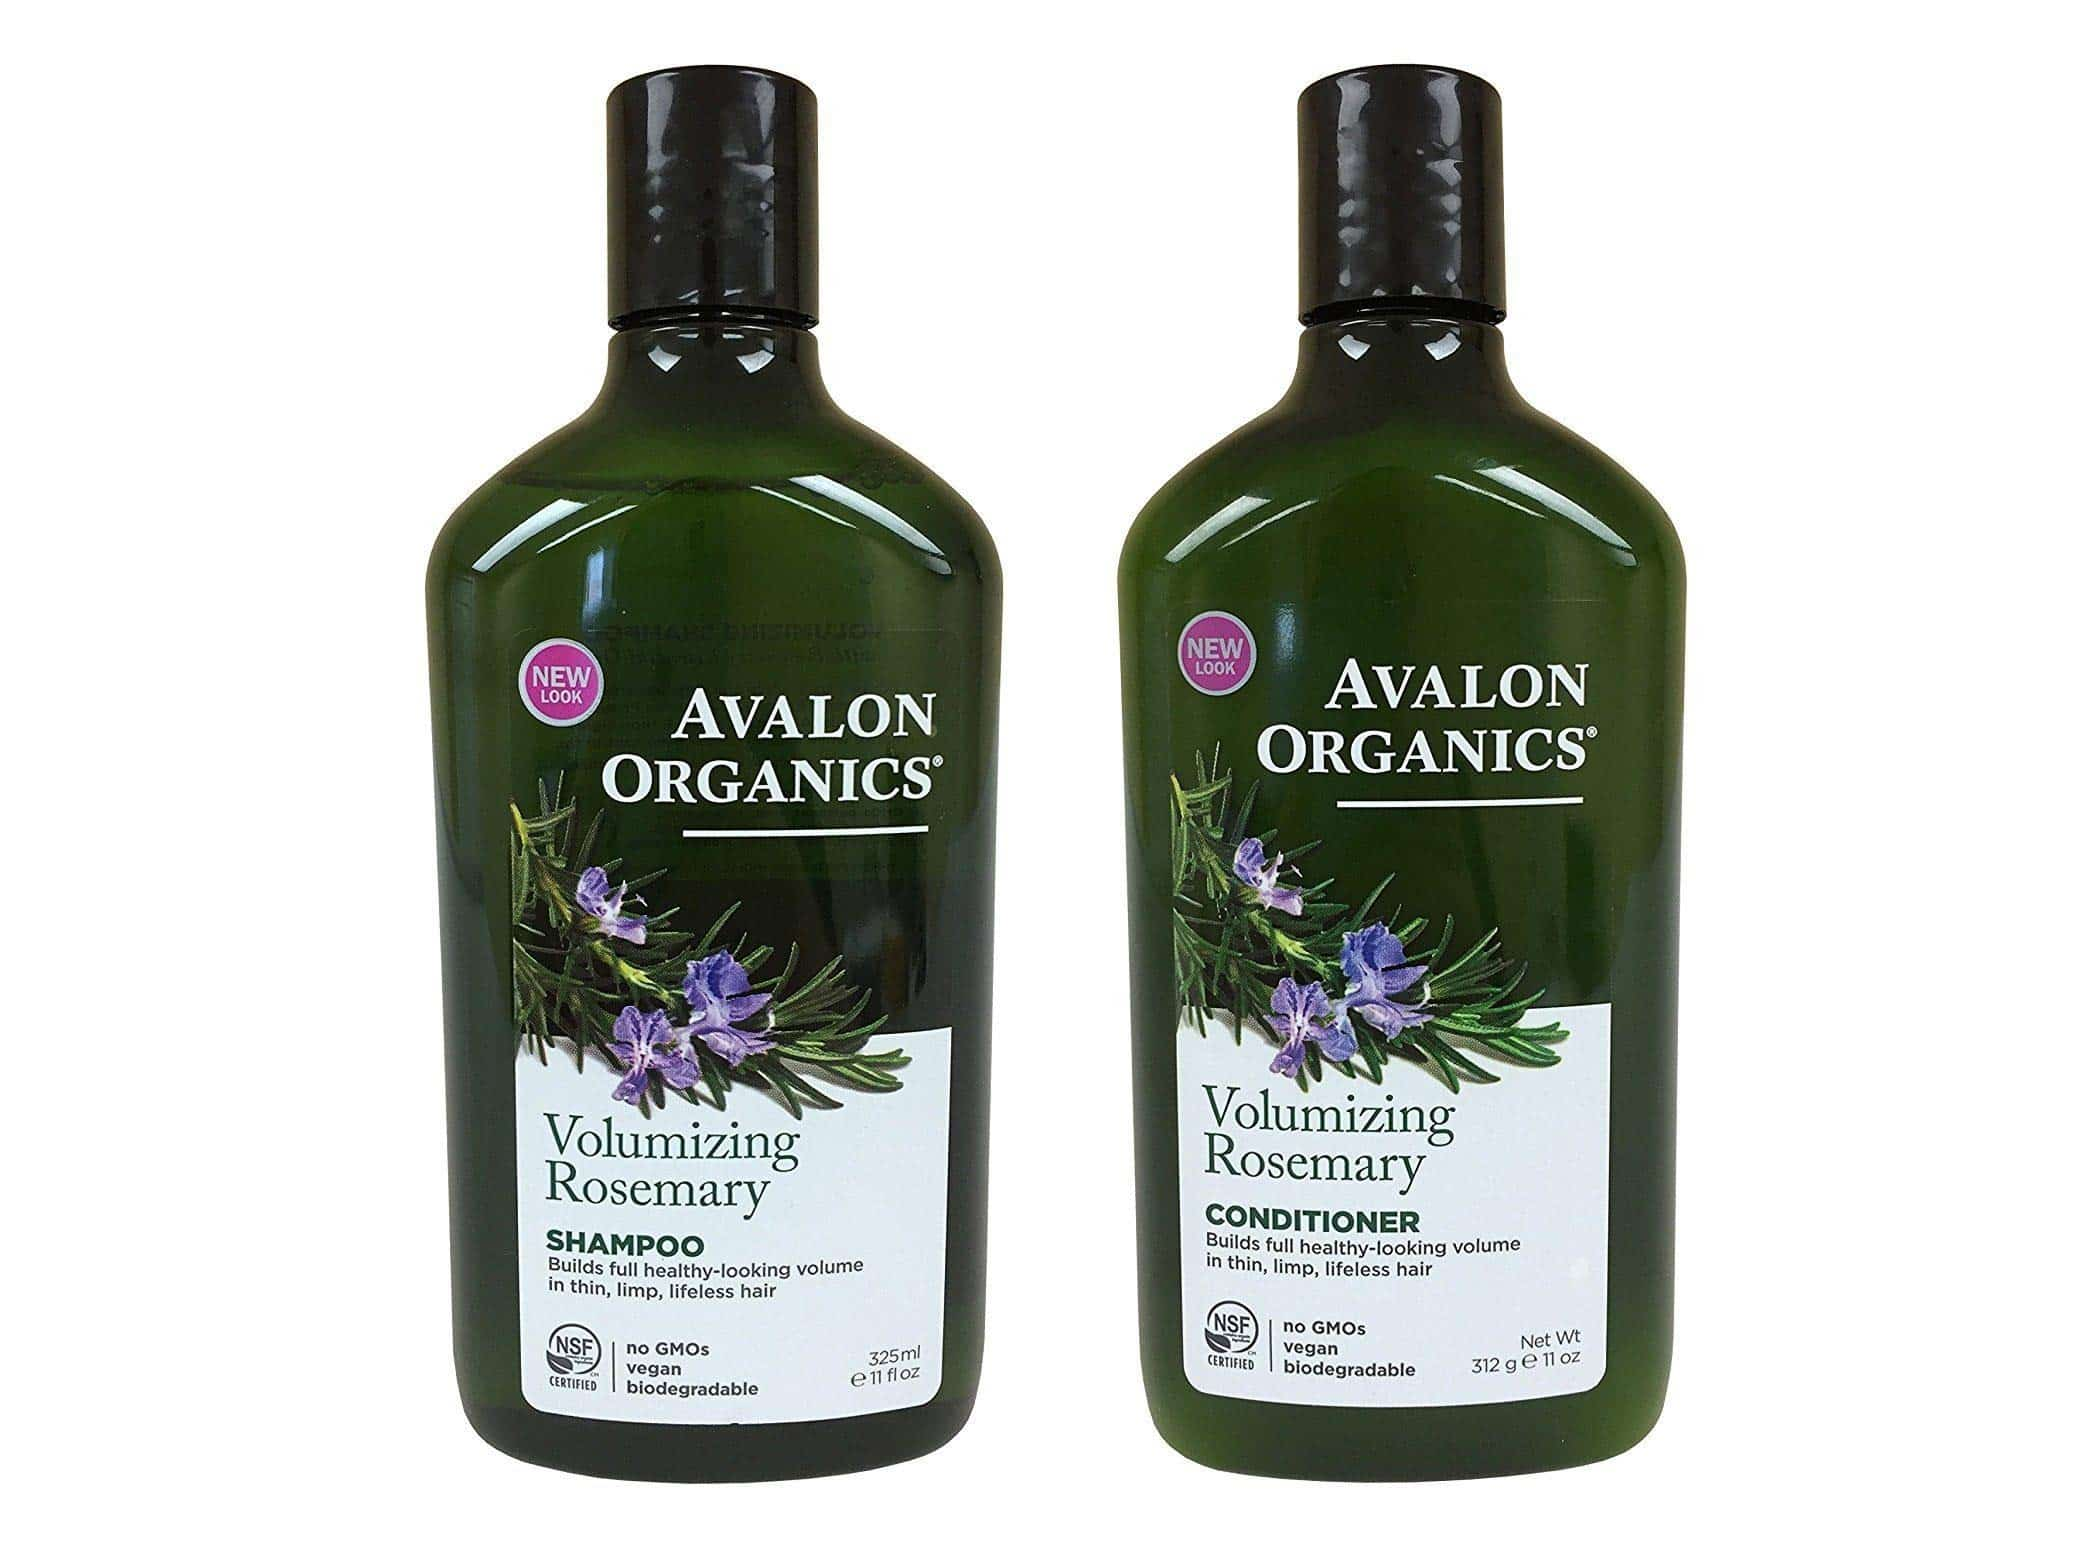 Avalon-Organics-Volumizing-Rosemary-Conditioner